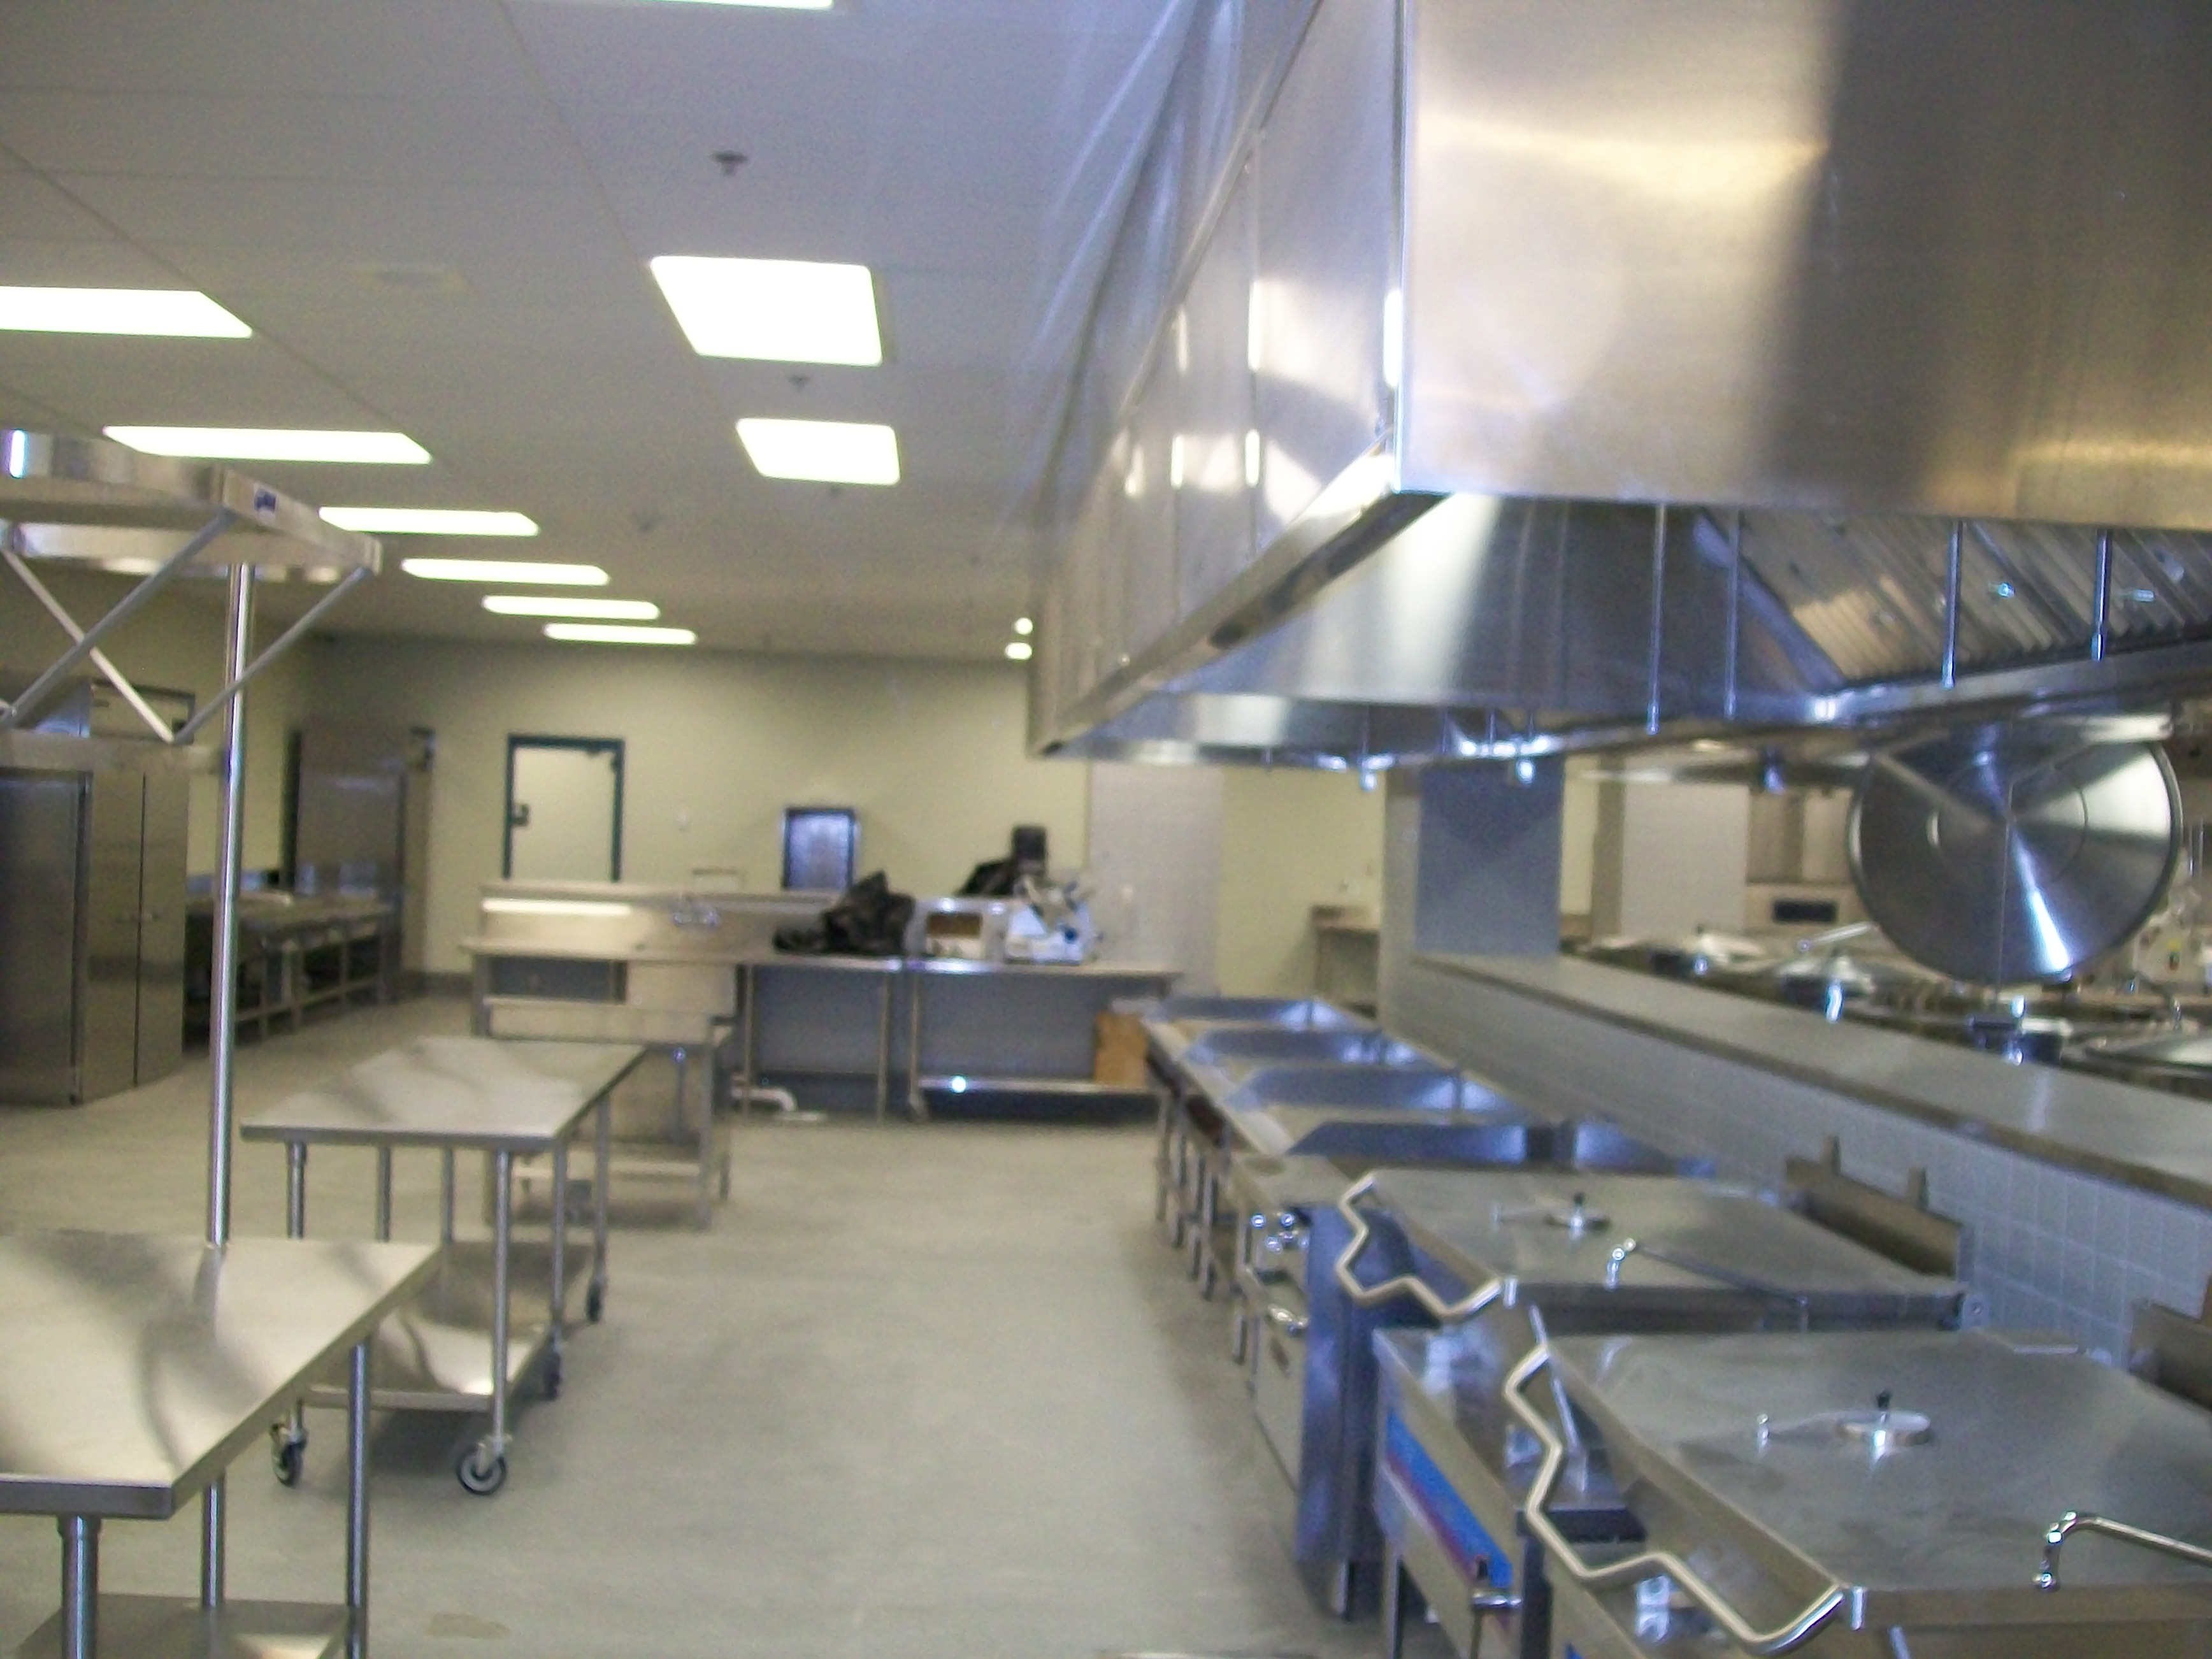 Gr Speer And Associates Commercial Kitchen And Laundry Equipment Services Prison Kitchen